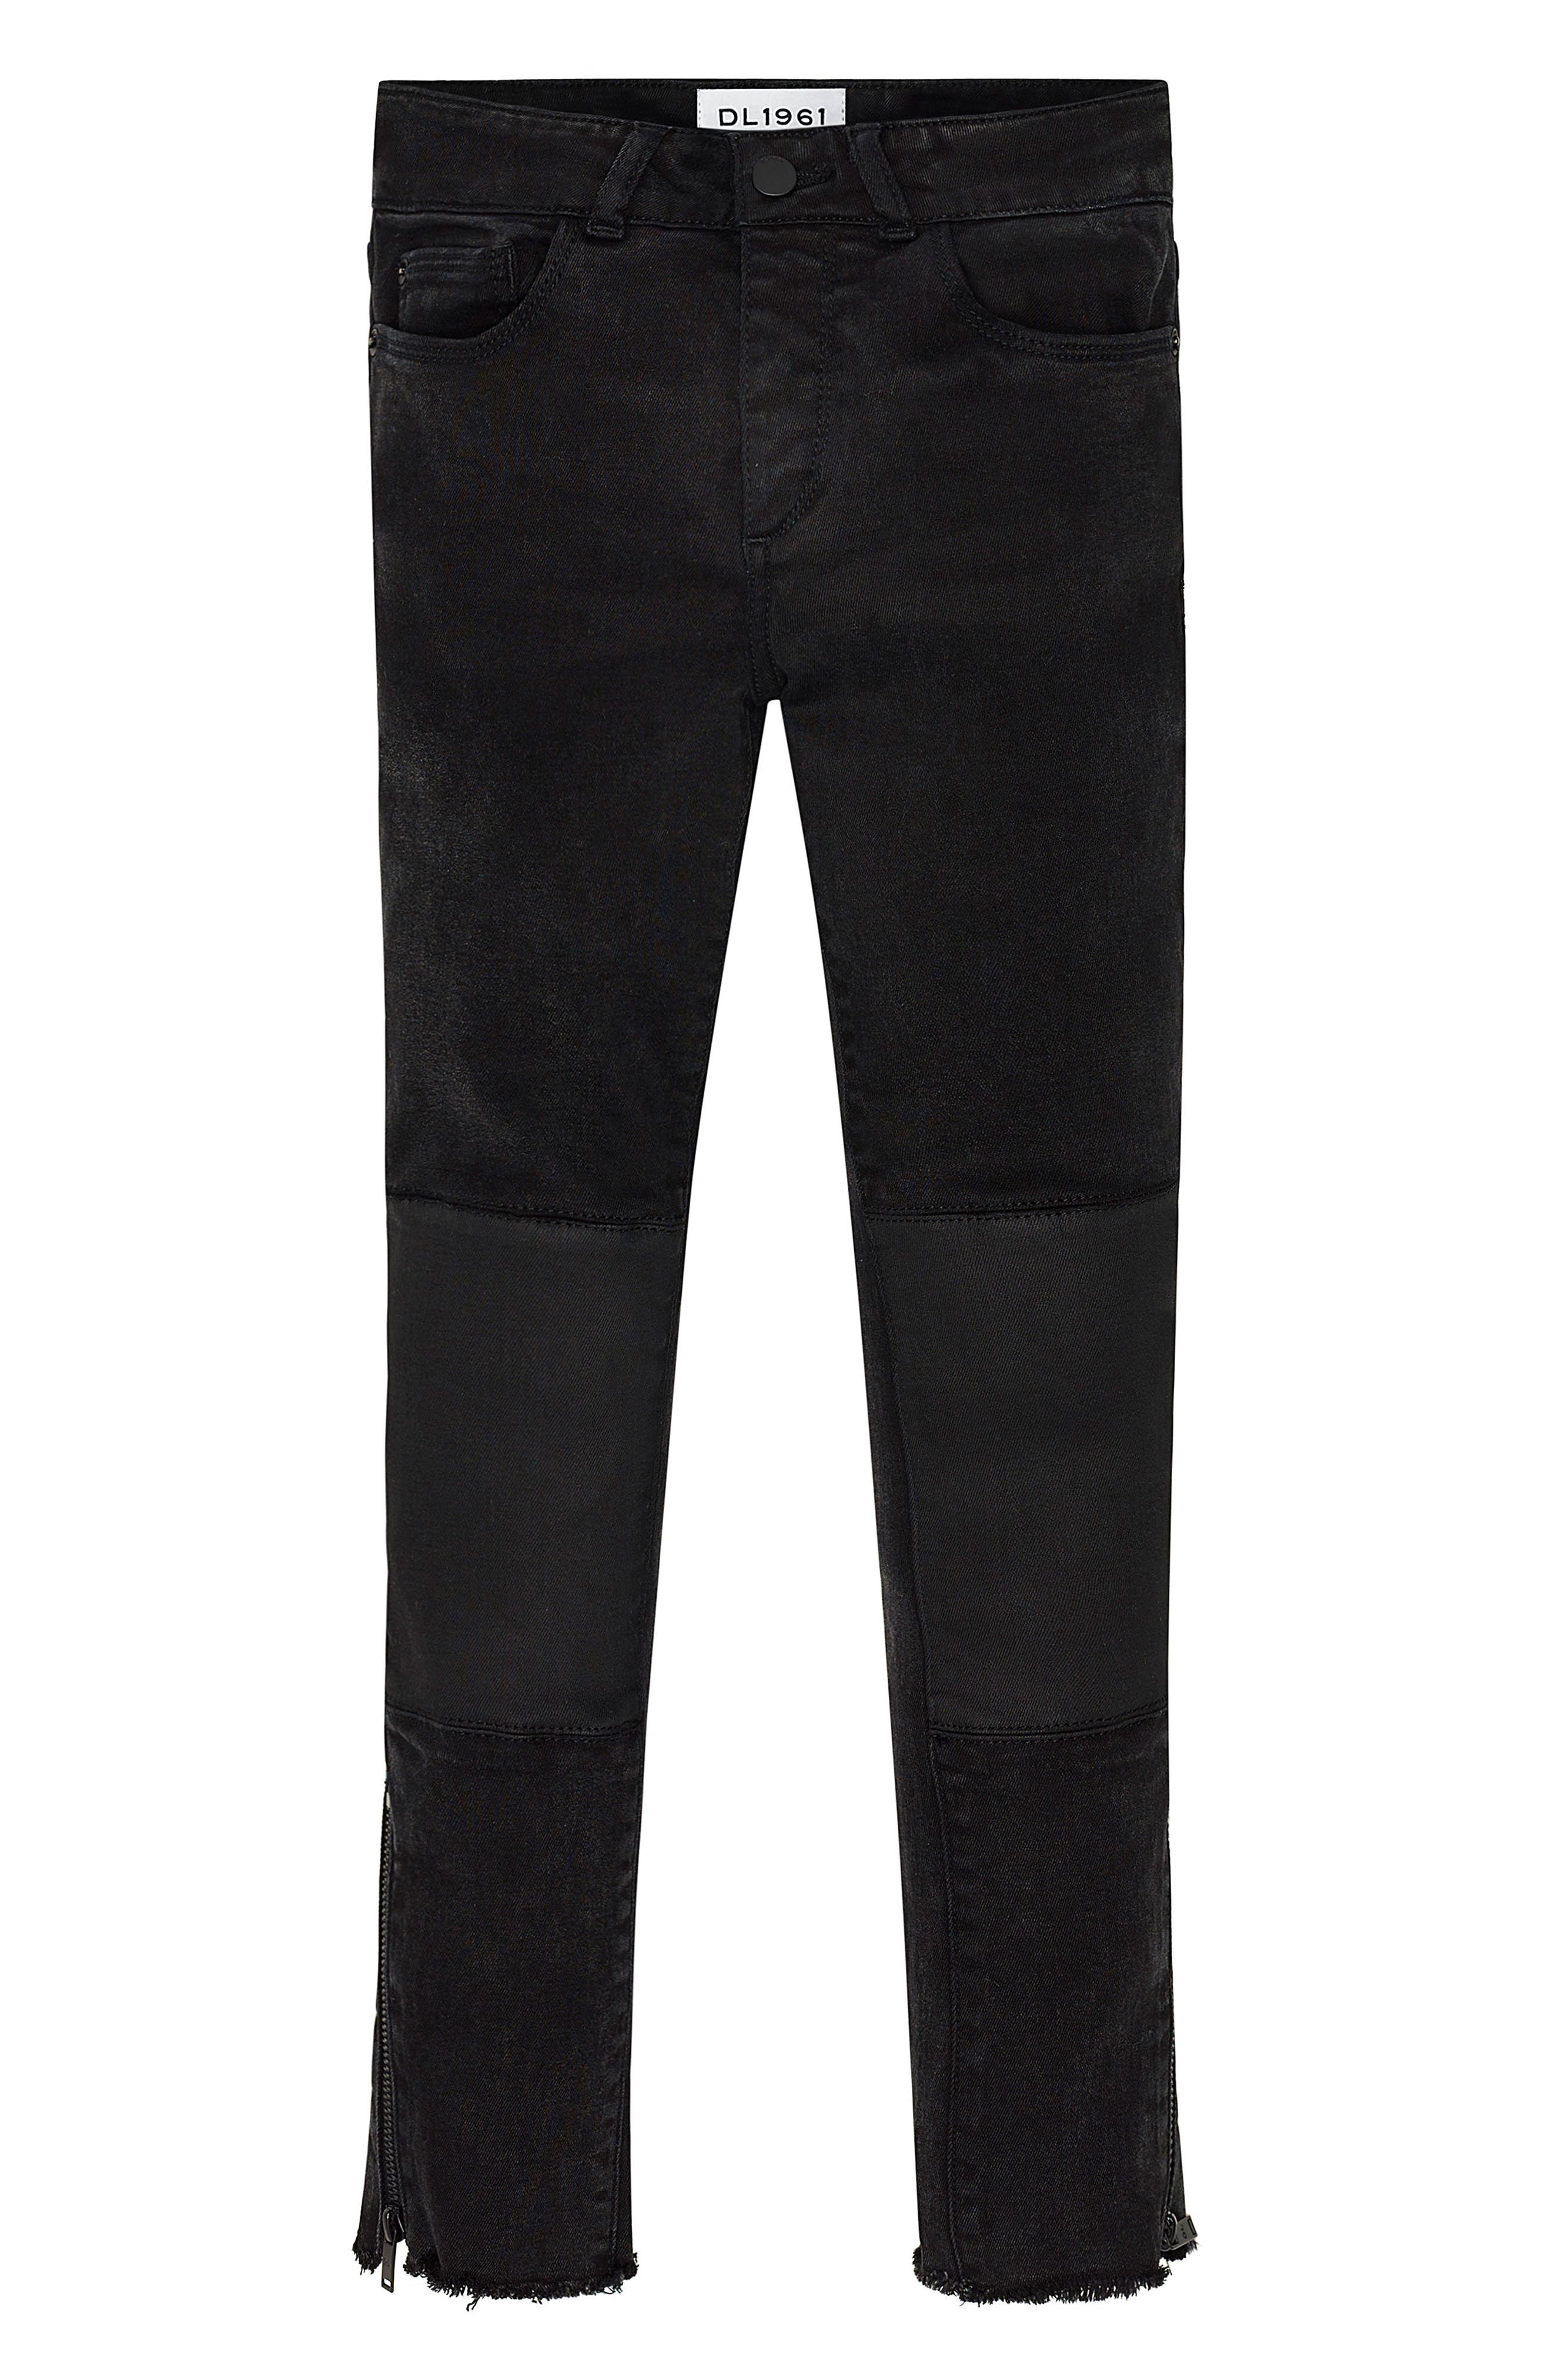 DL1961 Chloe Raw Hem Skinny Jeans (Big Girls)